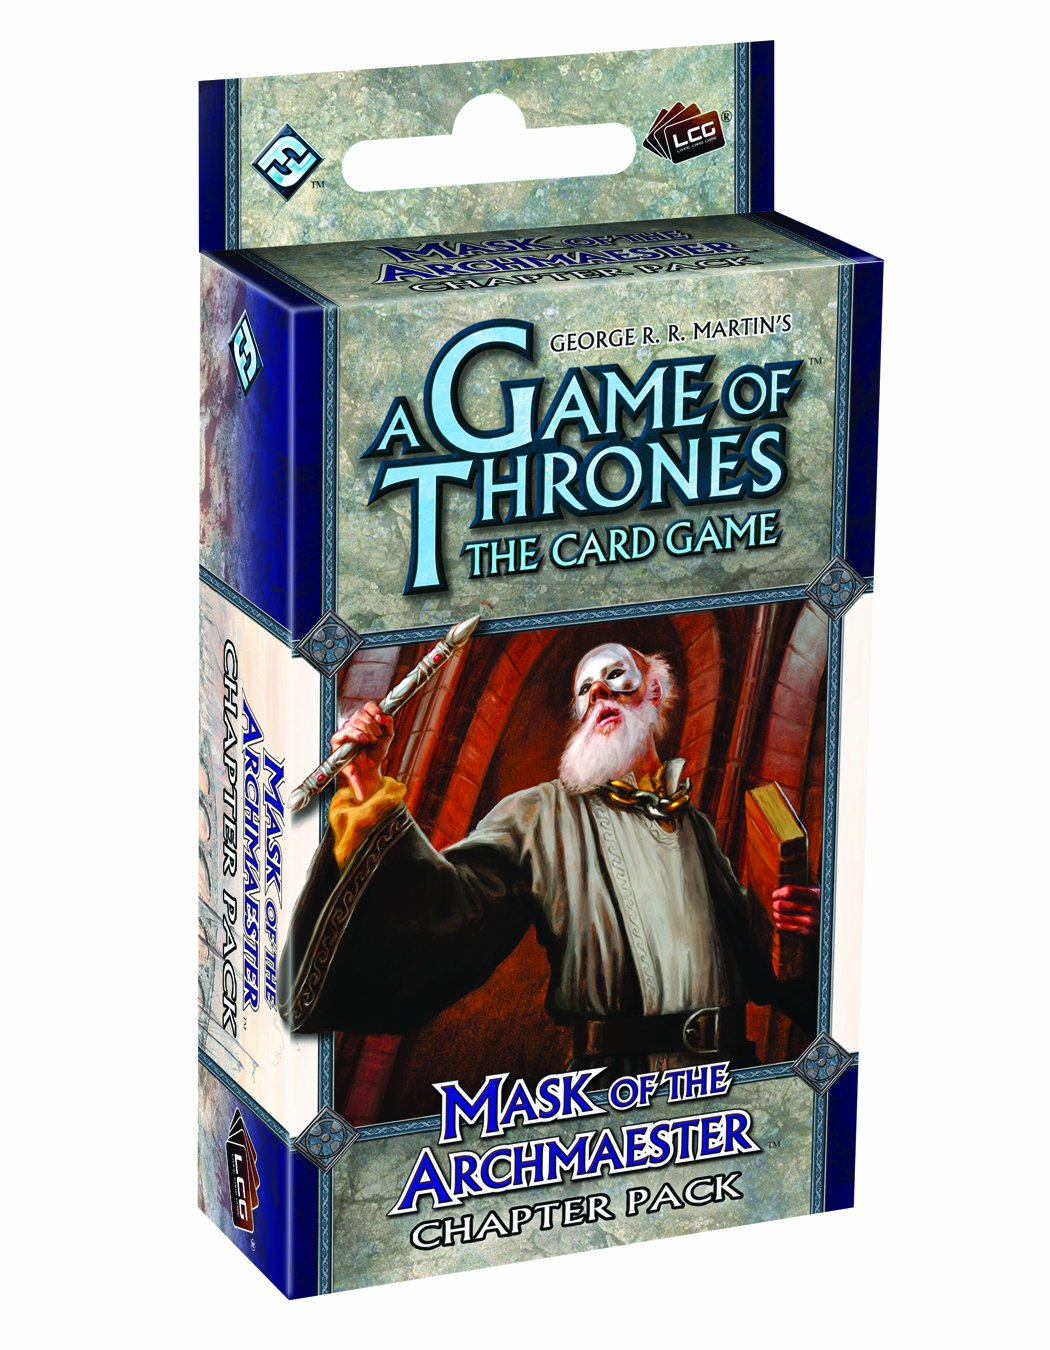 Mask of the Archmaester Chapter Pack Fantasy Flight Publishing GOT72 Card Games A Game of Thrones Card Games General Games//Puzzles The Card Game General Games /& Activities